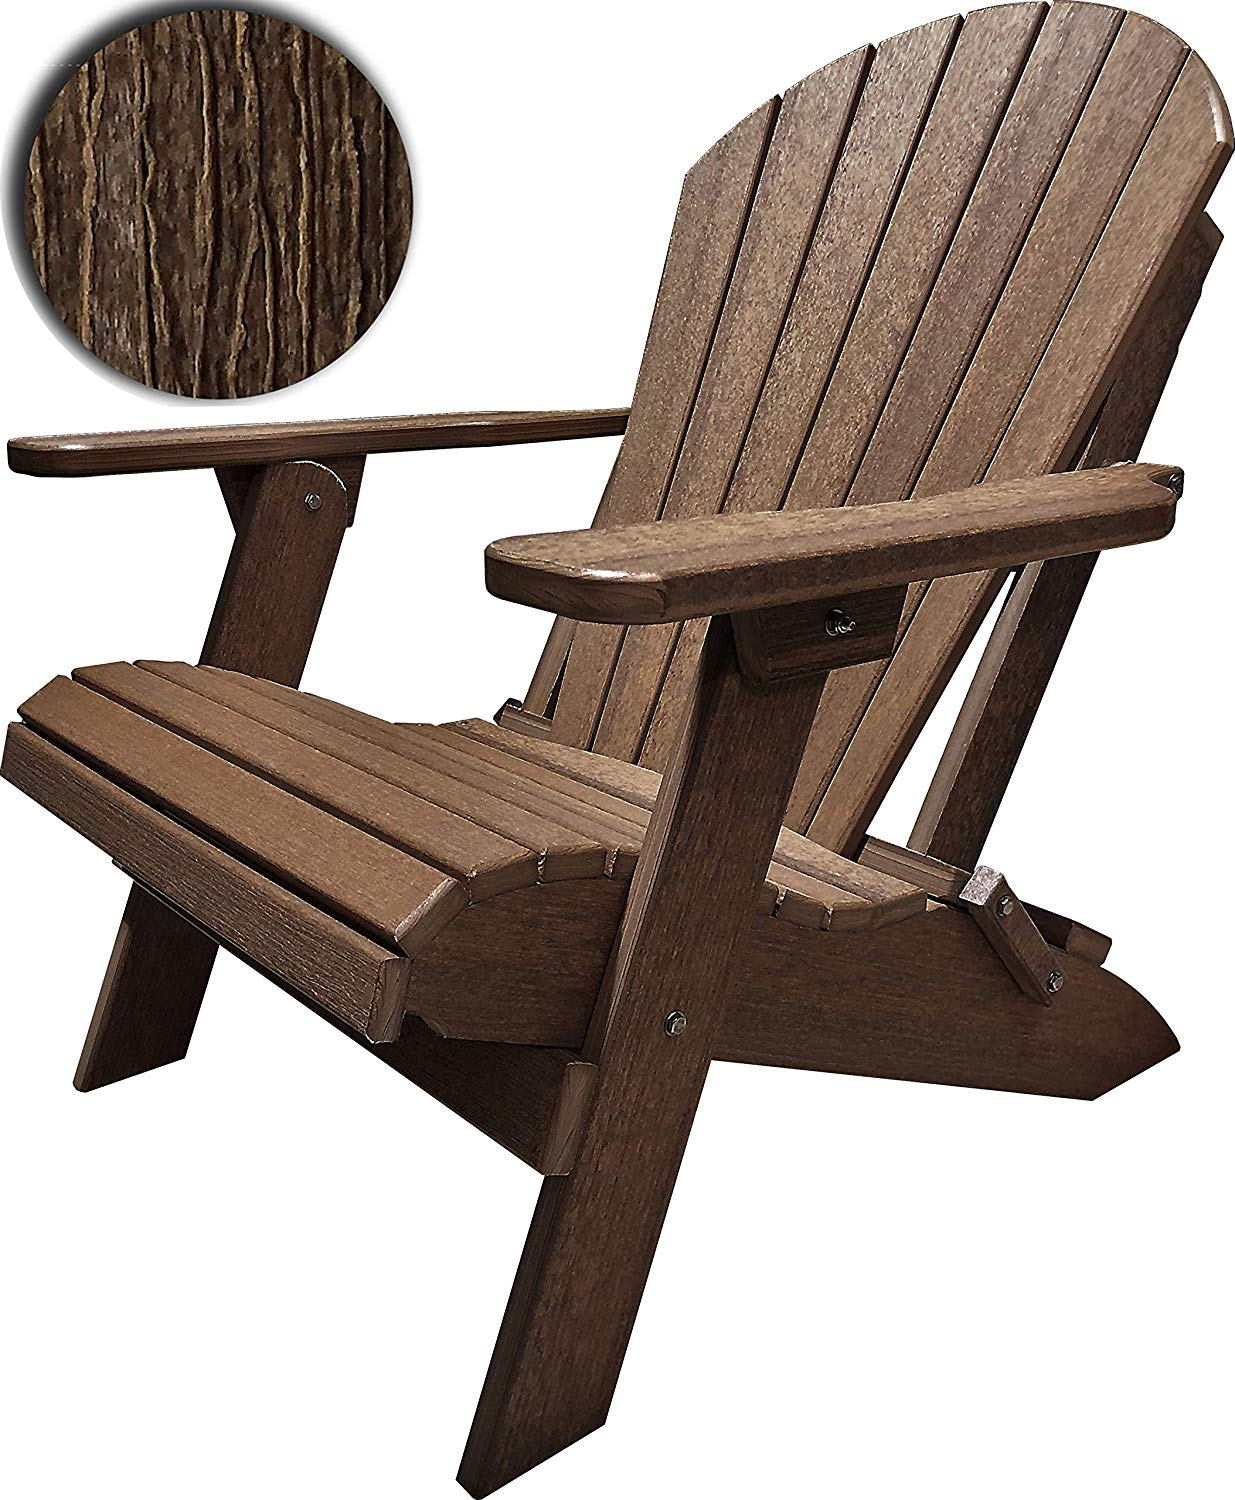 DURAWEATHER POLY Classic King Size Folding Adirondack Chair (Antique Mahogany)